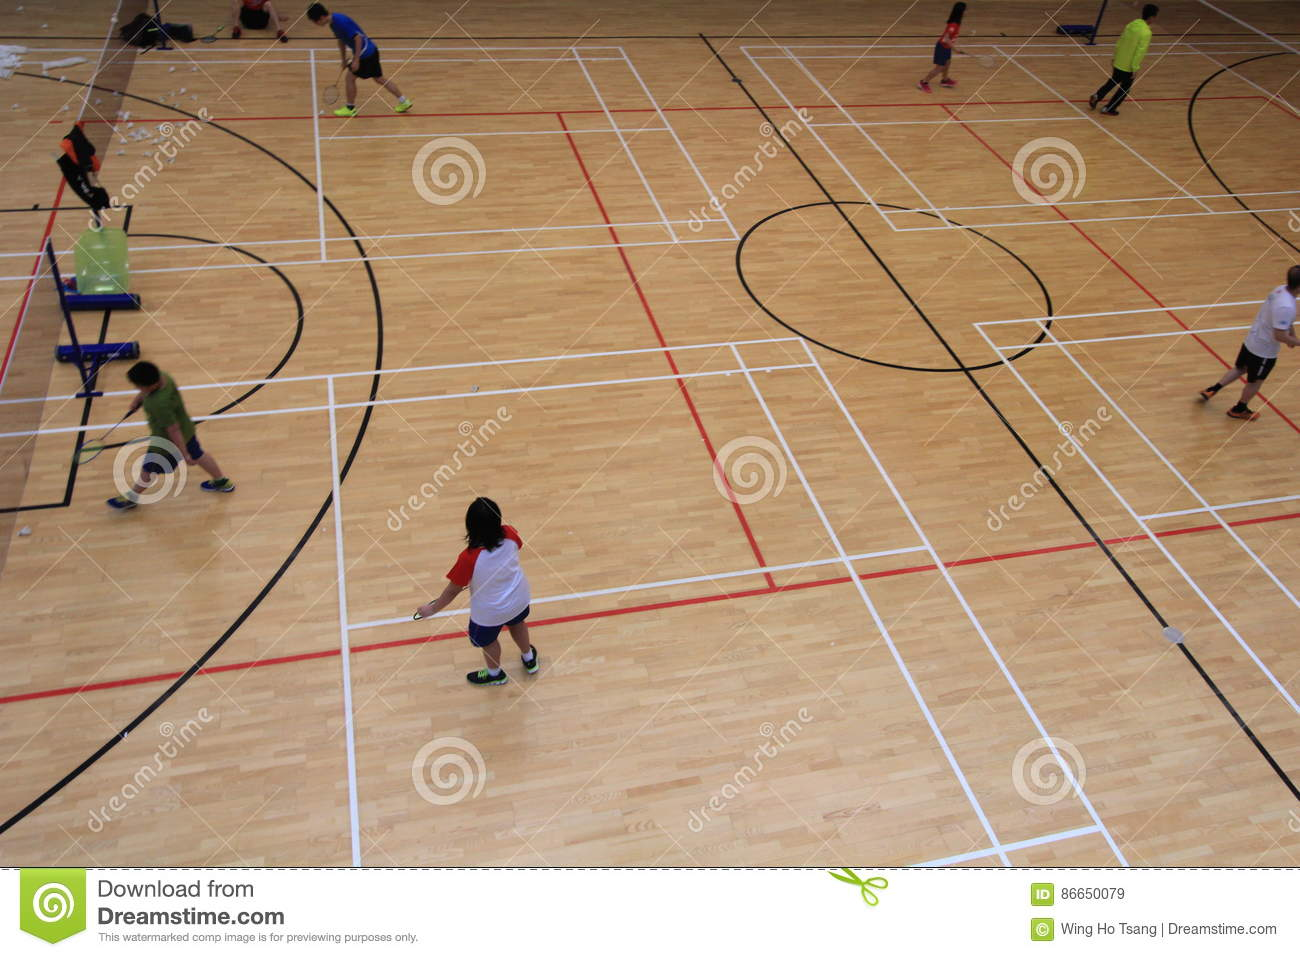 Sports, sport, venue, floor, flooring, ball, game, play, player, games, hardwood, competition, event, net, fun, tennis, equipment,